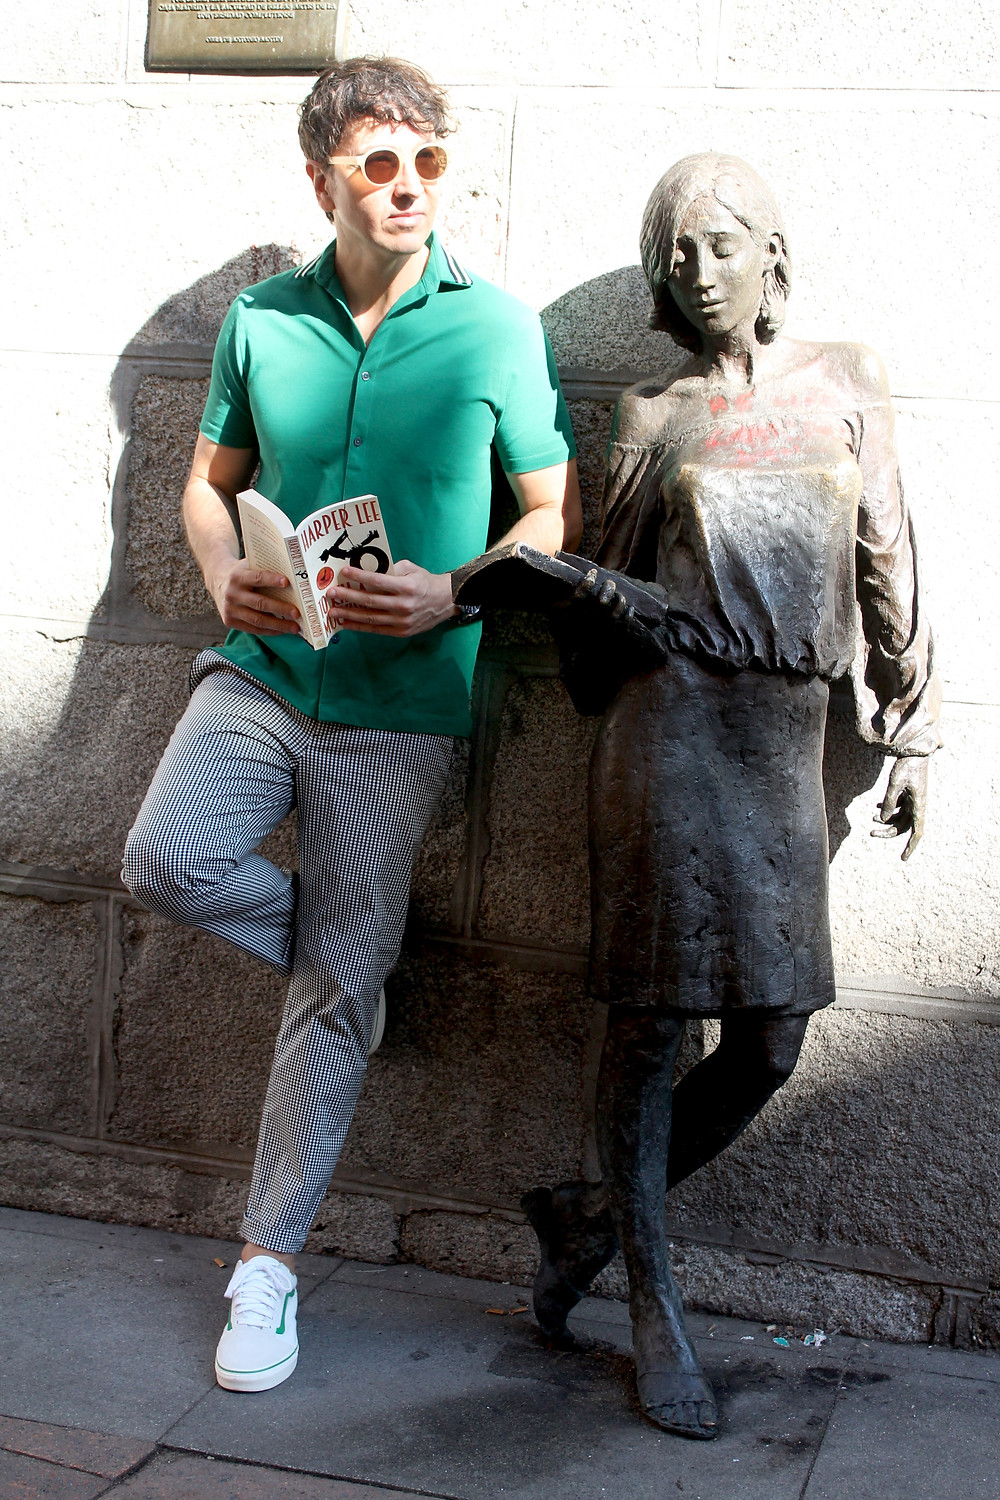 The Trendy Man con Julia, la estatua de Malasaña